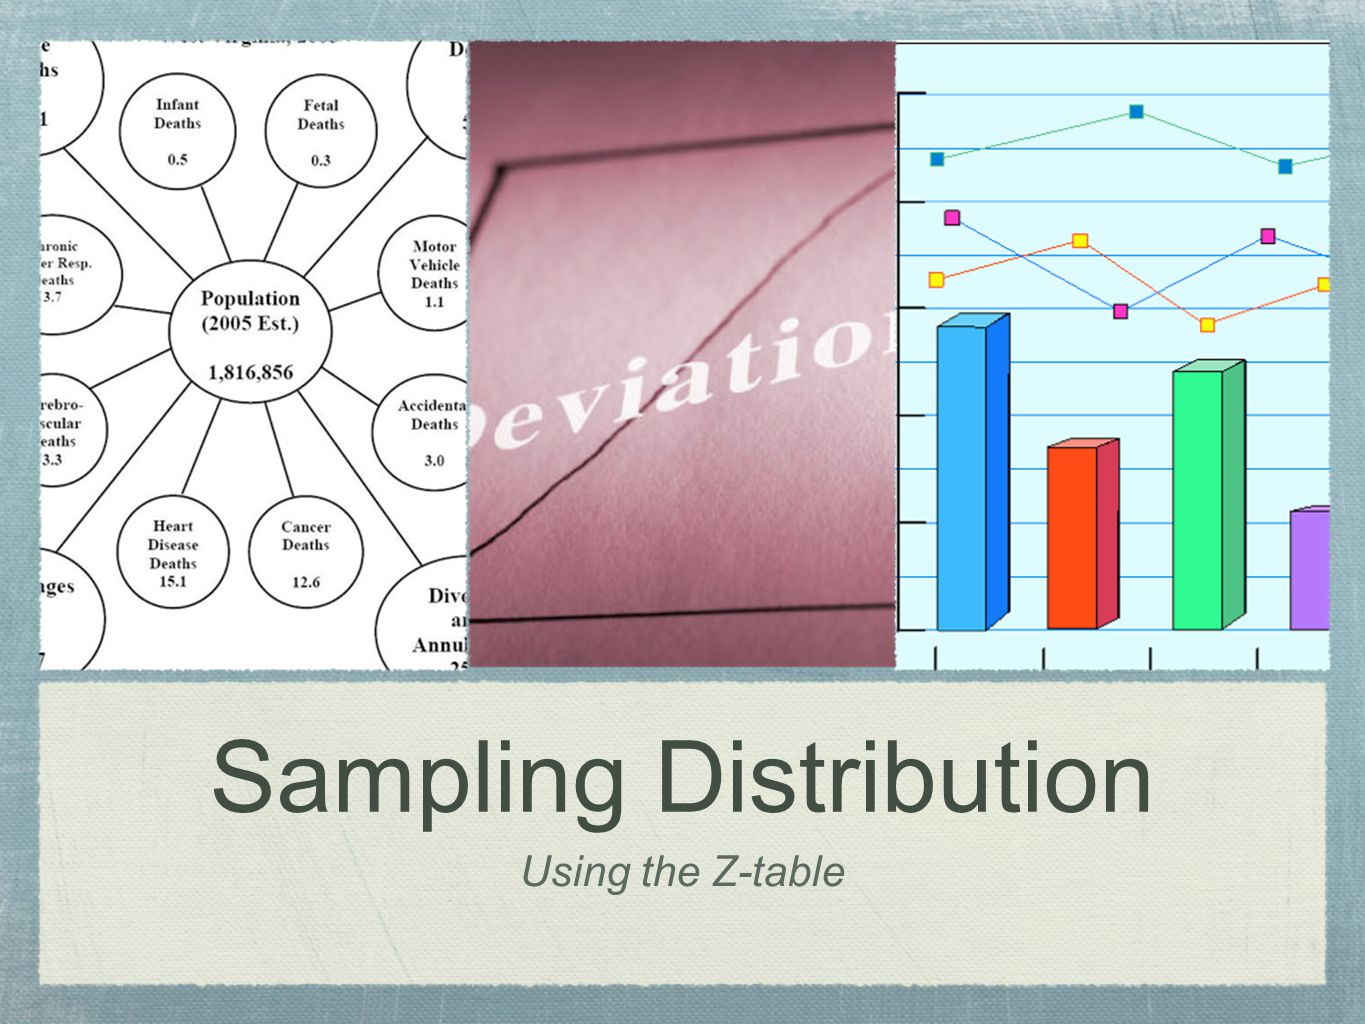 Sampling Distribution